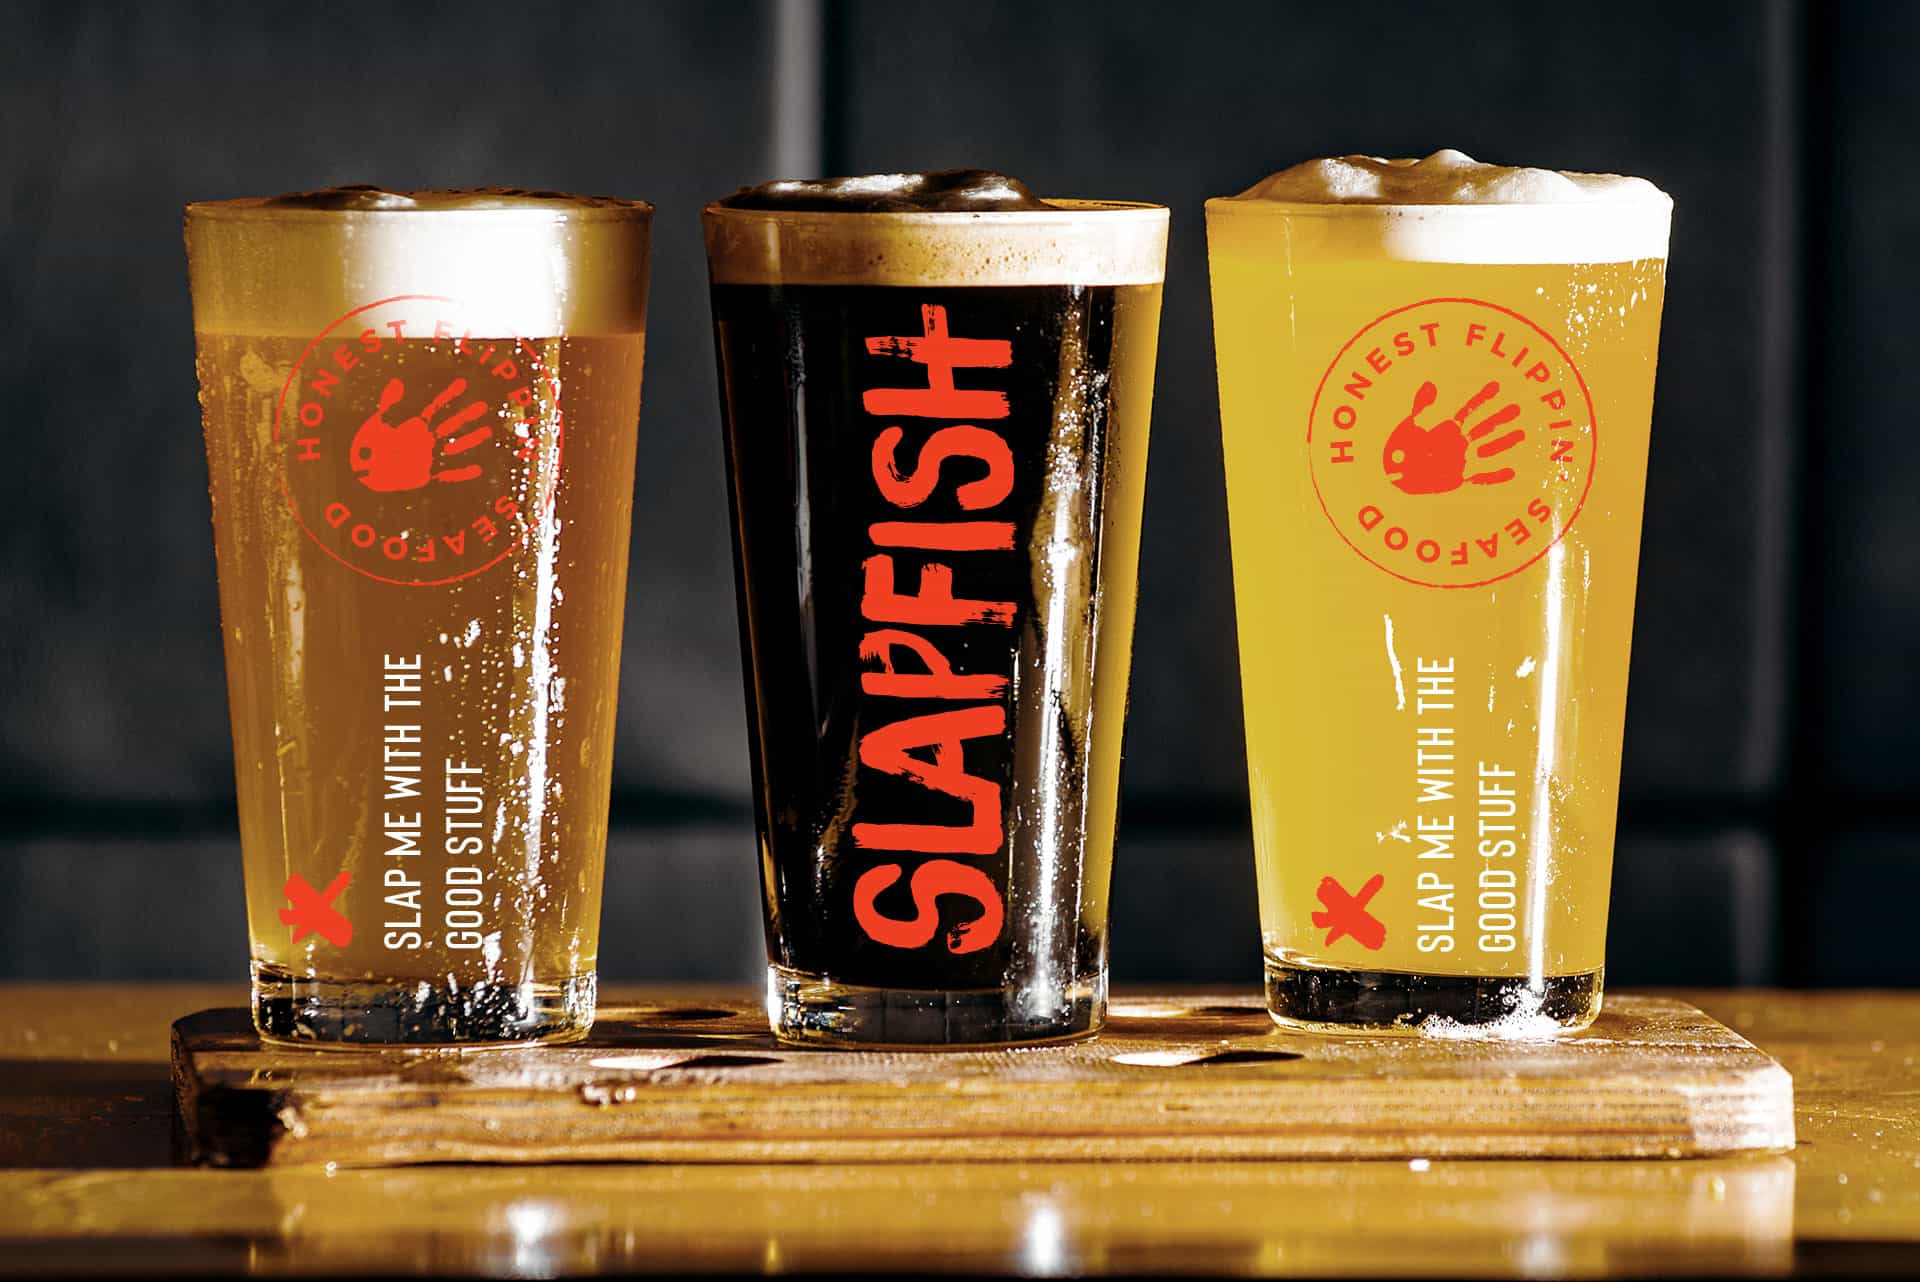 SlapFish seafood restaurant rebranding pint glass beer design